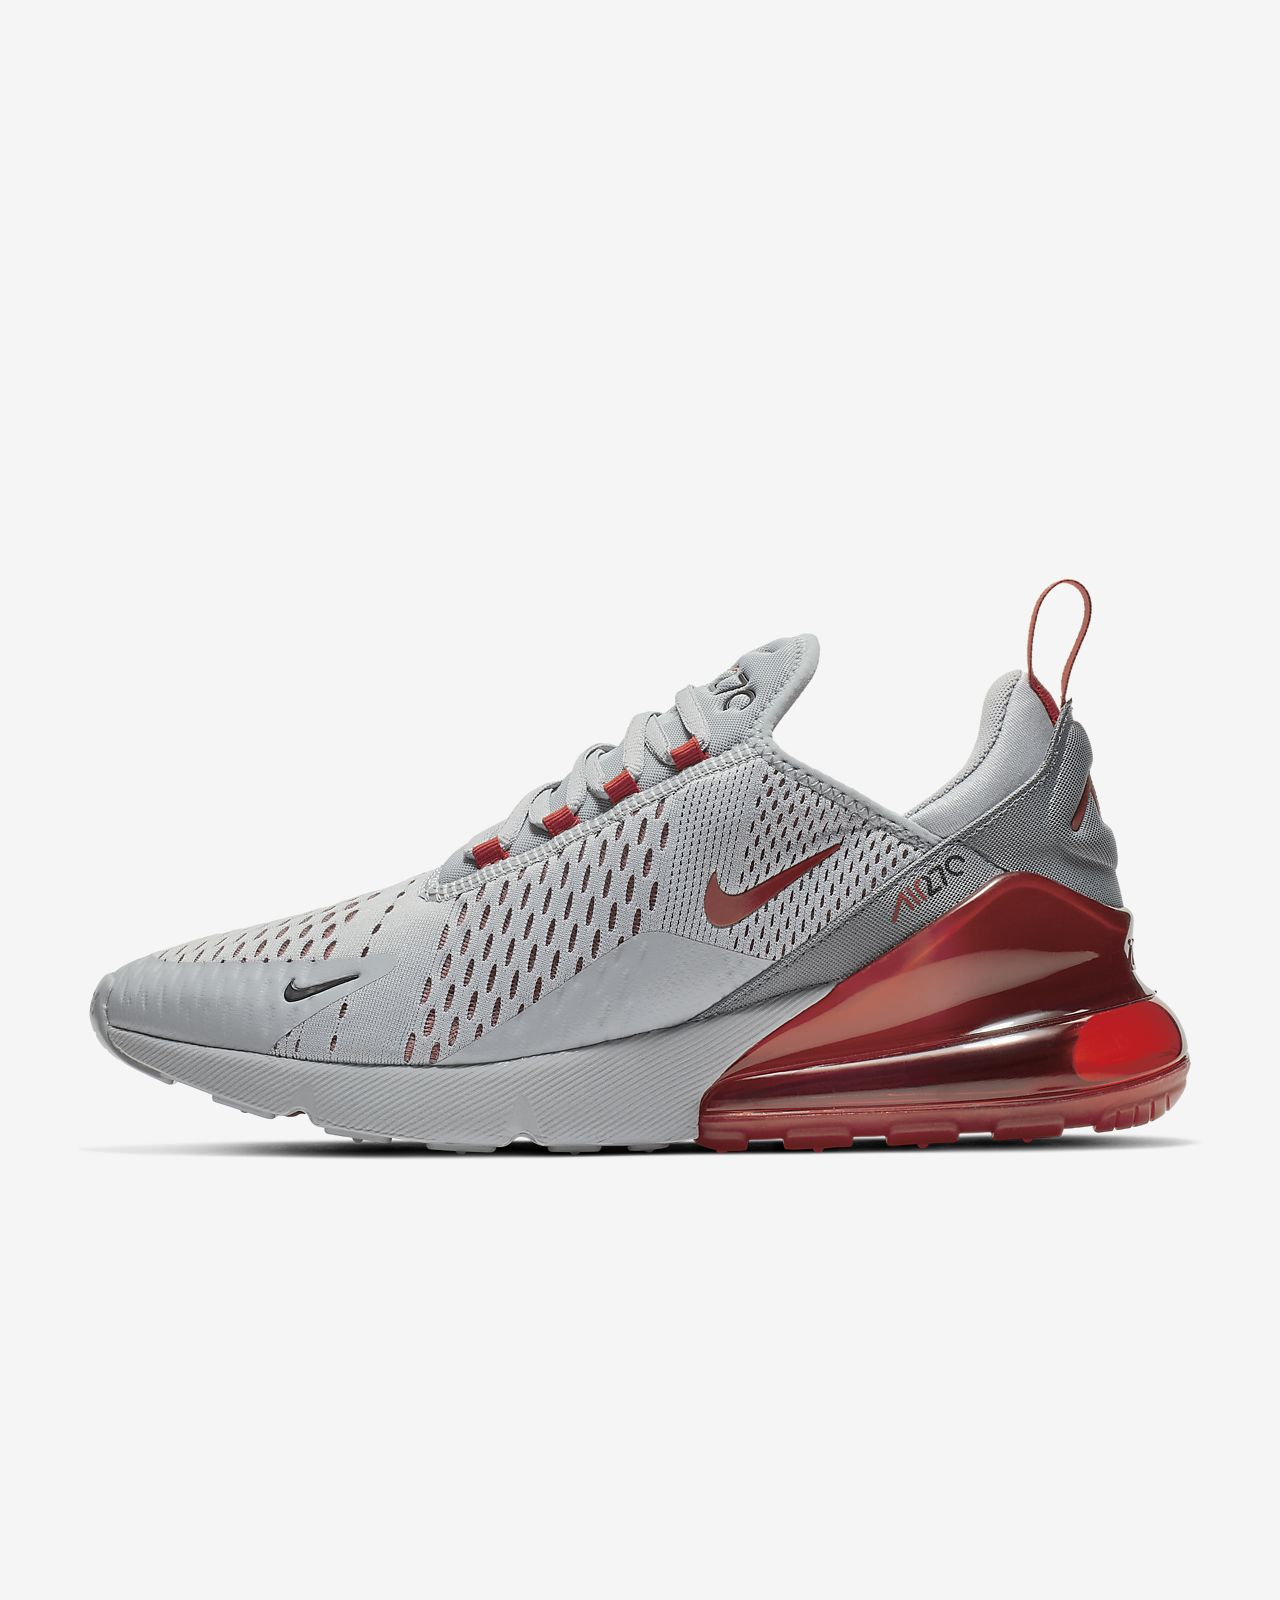 3a19fe18b86 Nike Air Max 270 Men s Shoe. Nike.com ID